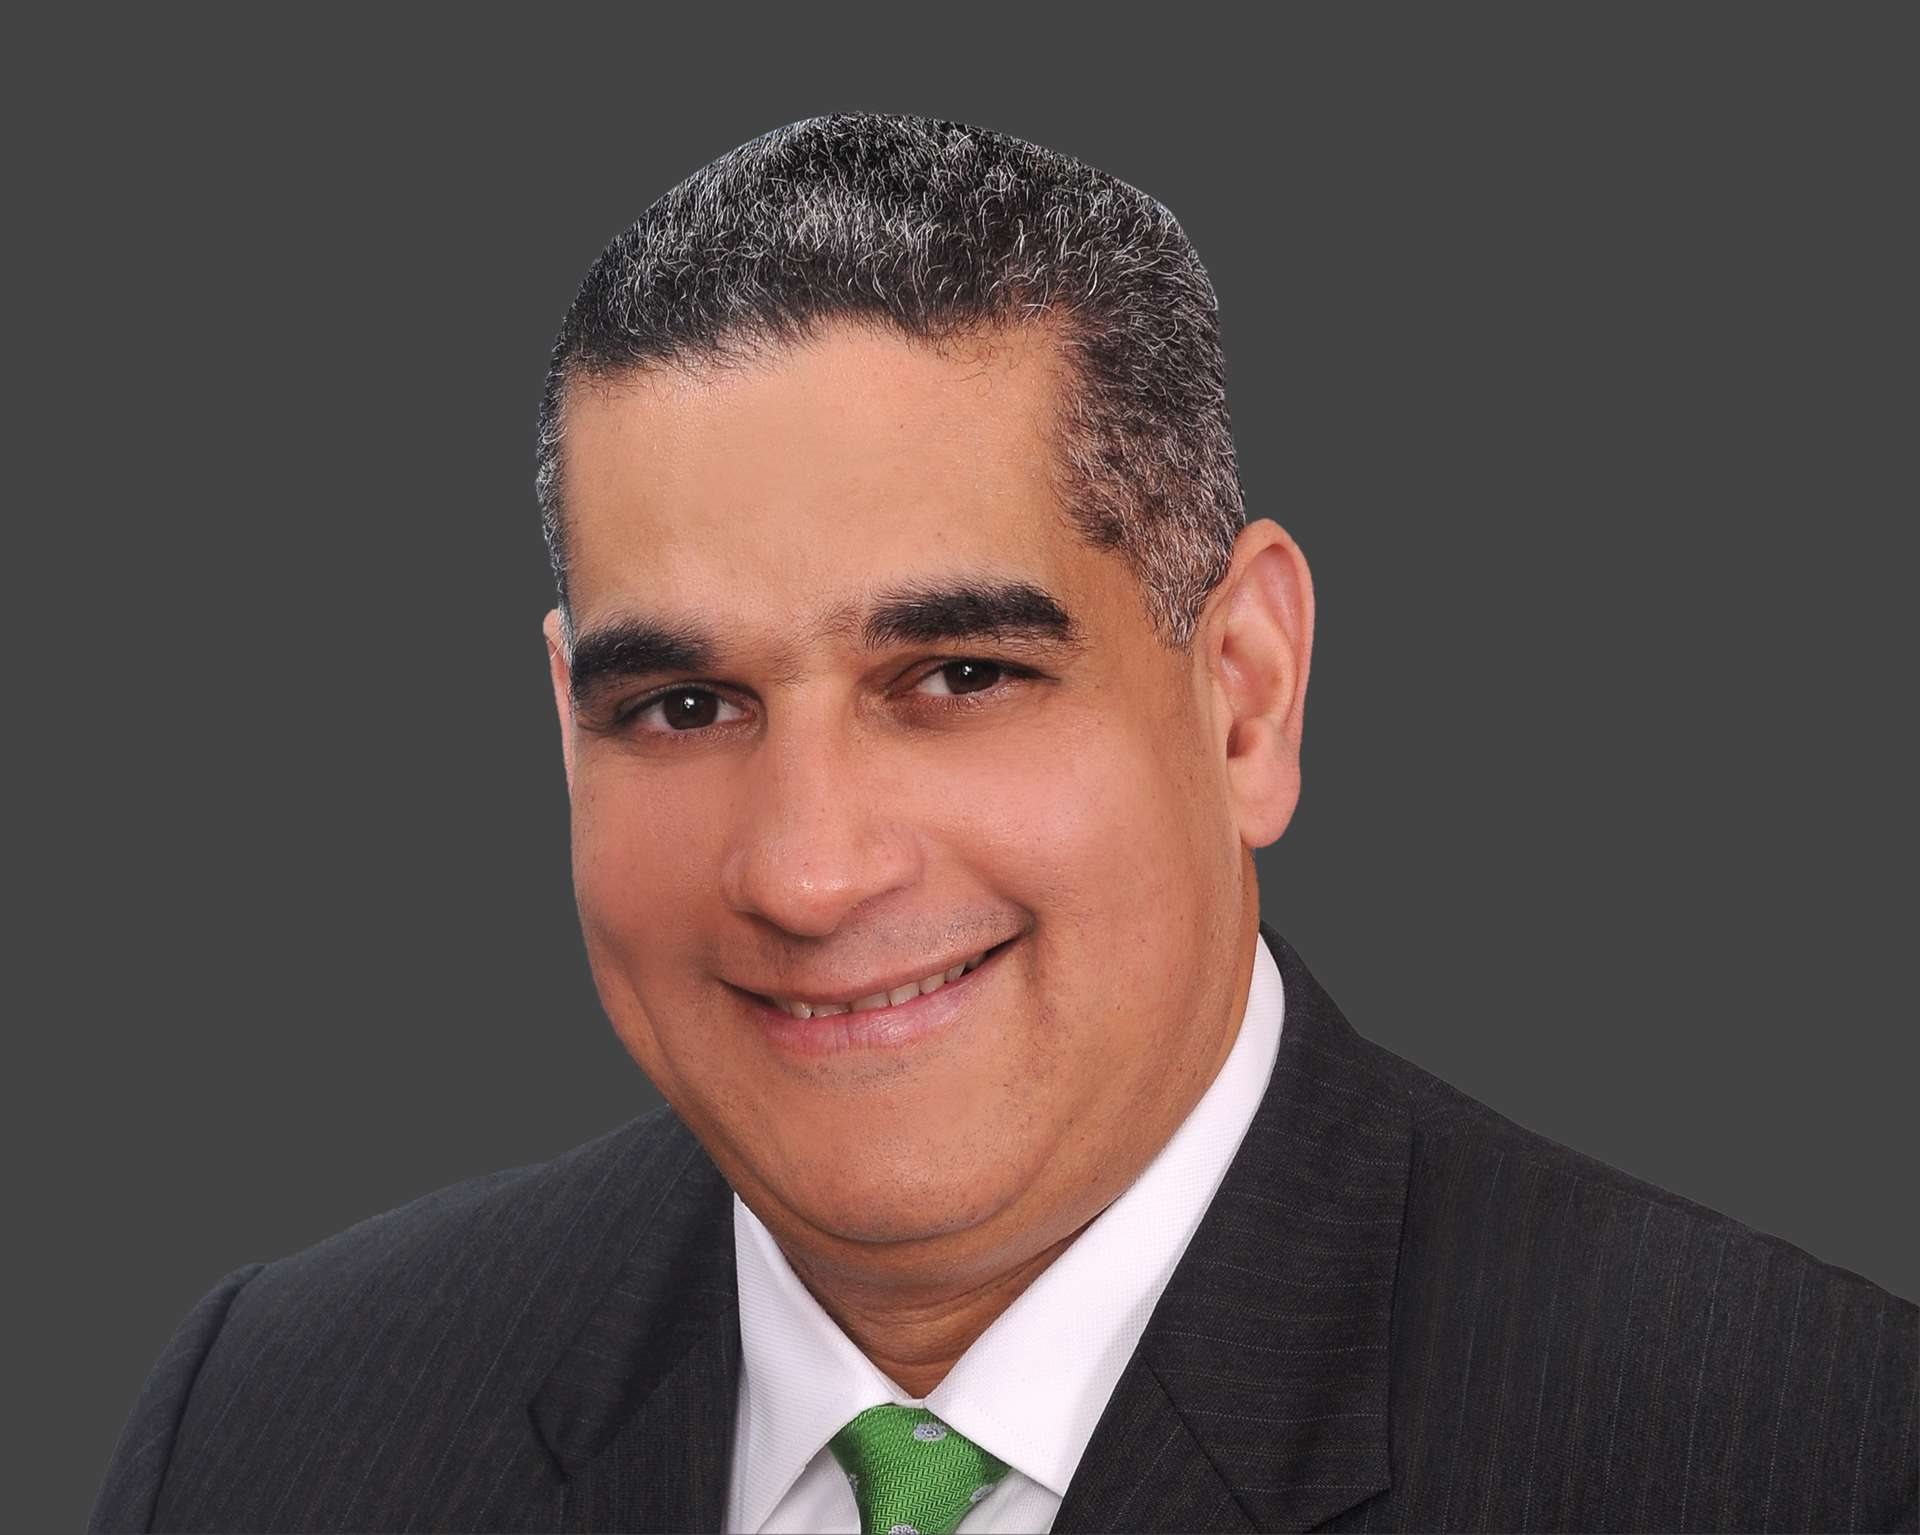 Carlos Alberto Ortega, Managing Partner, And International Liaison Partner